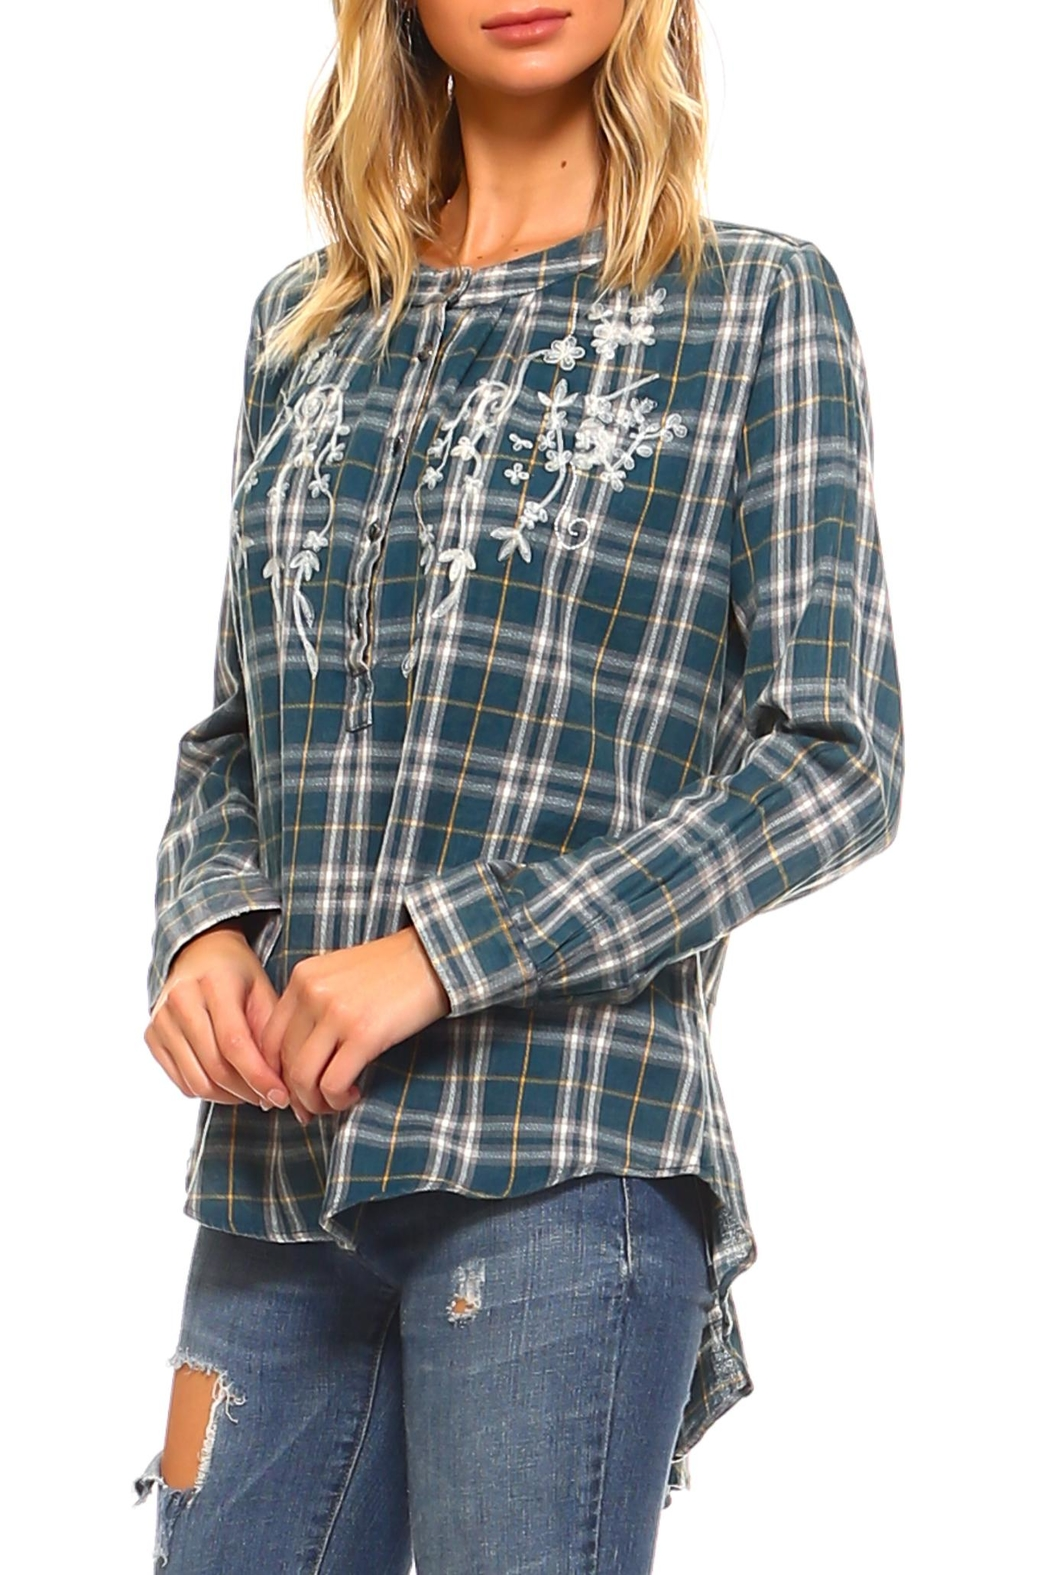 Lola P. Embroidered Plaid Shirt - Front Full Image